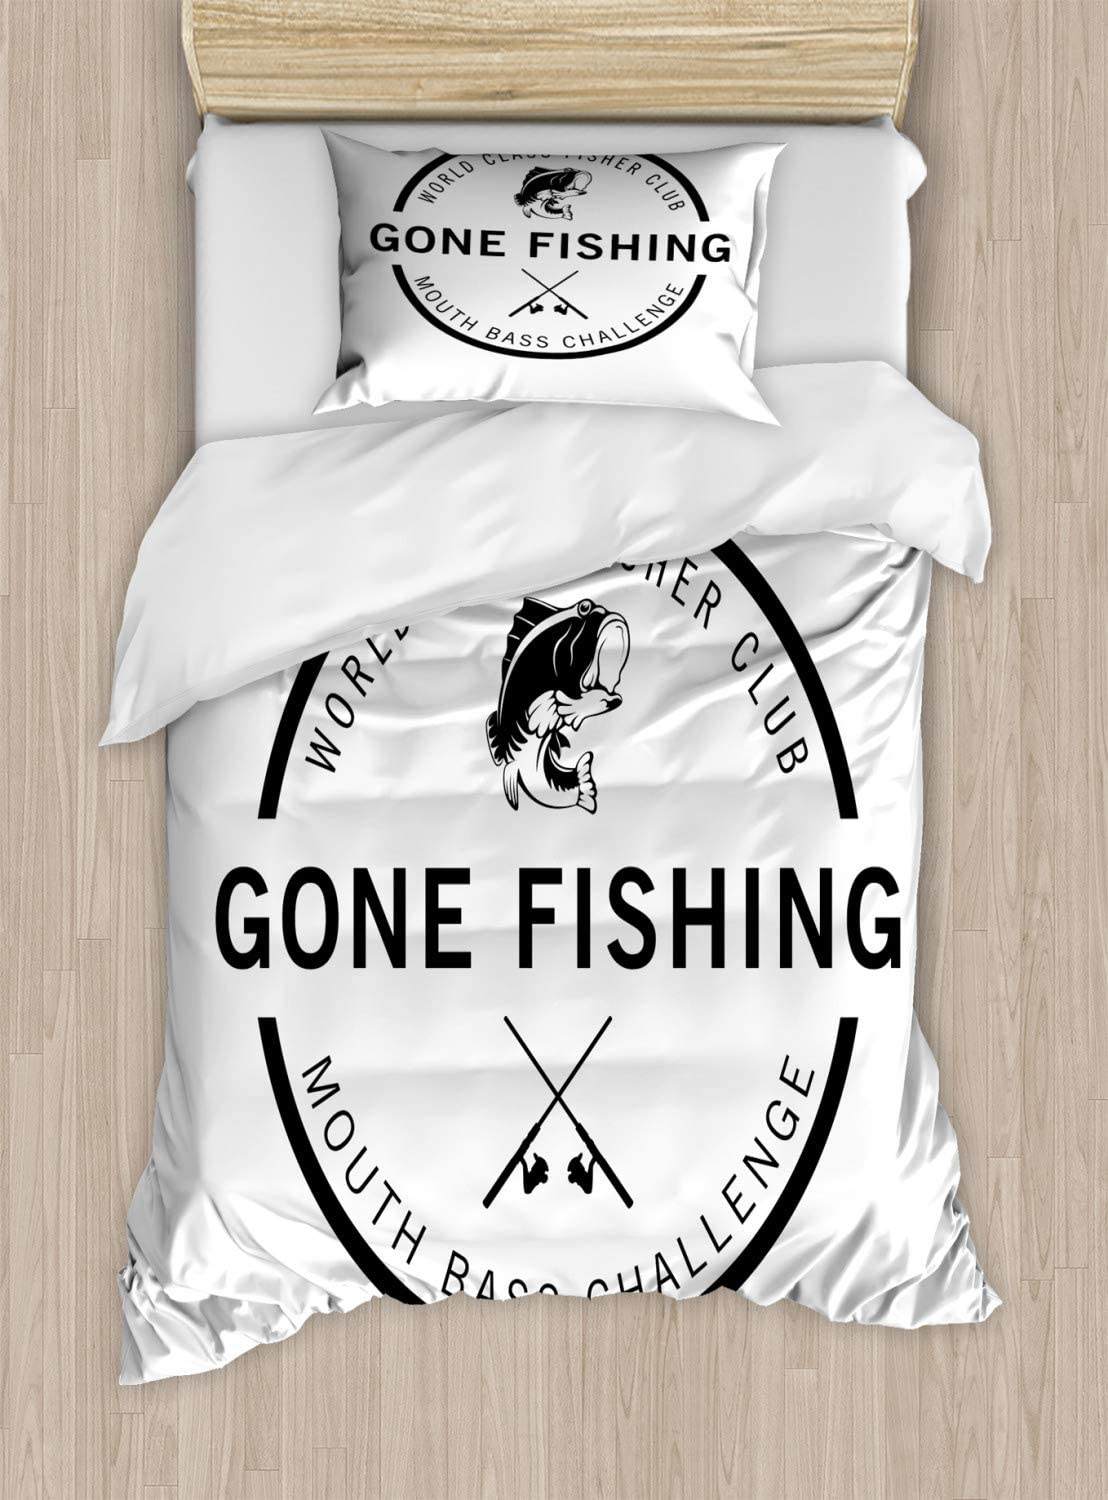 B07PXMHBYB Ambesonne Gone Fishing Duvet Cover Set, Hobby Emblem Like Design World Class Fisher Club Mouth Bass Challenge, Decorative 2 Piece Bedding Set with 1 Pillow Sham, Twin Size, Charcoal Grey White 71PZZt0YyZL.SL1500_